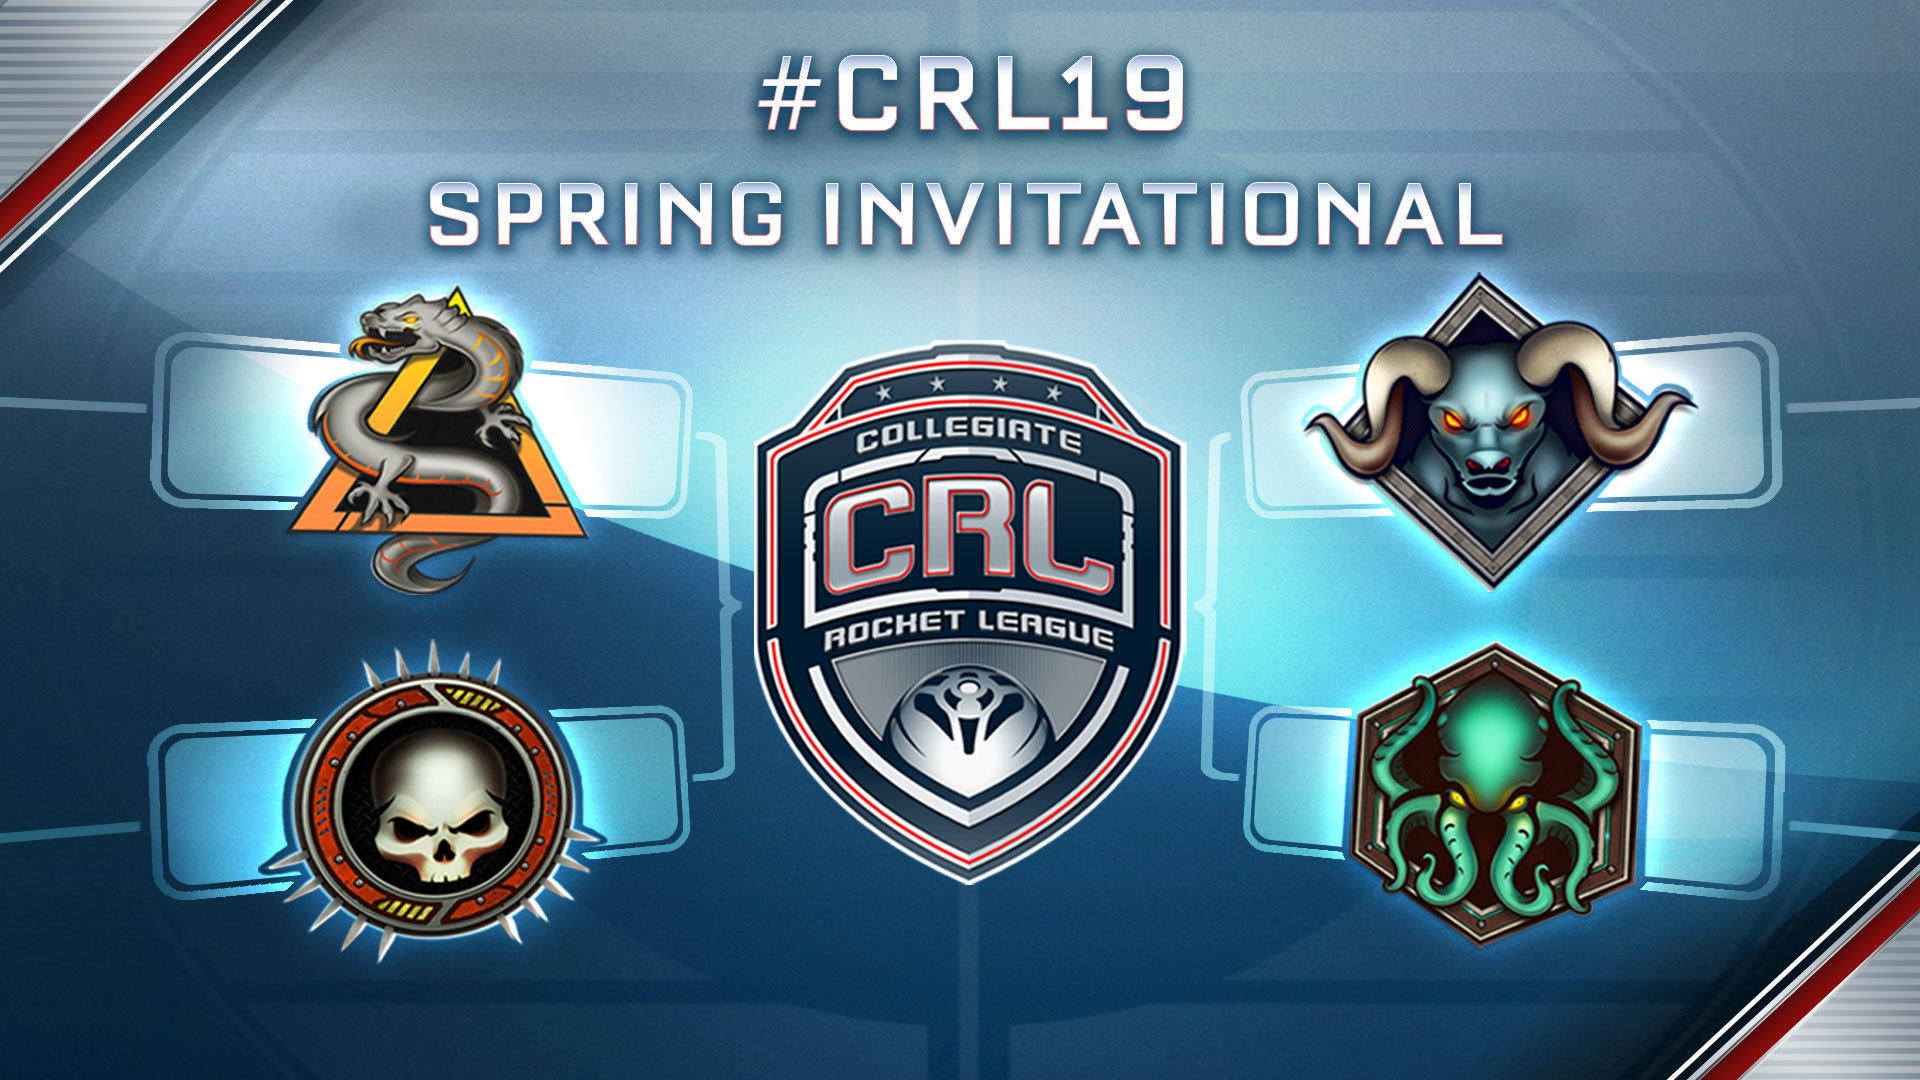 CRL Spring Invitational Coming to NCAA Final Four in Minneapolis  Image